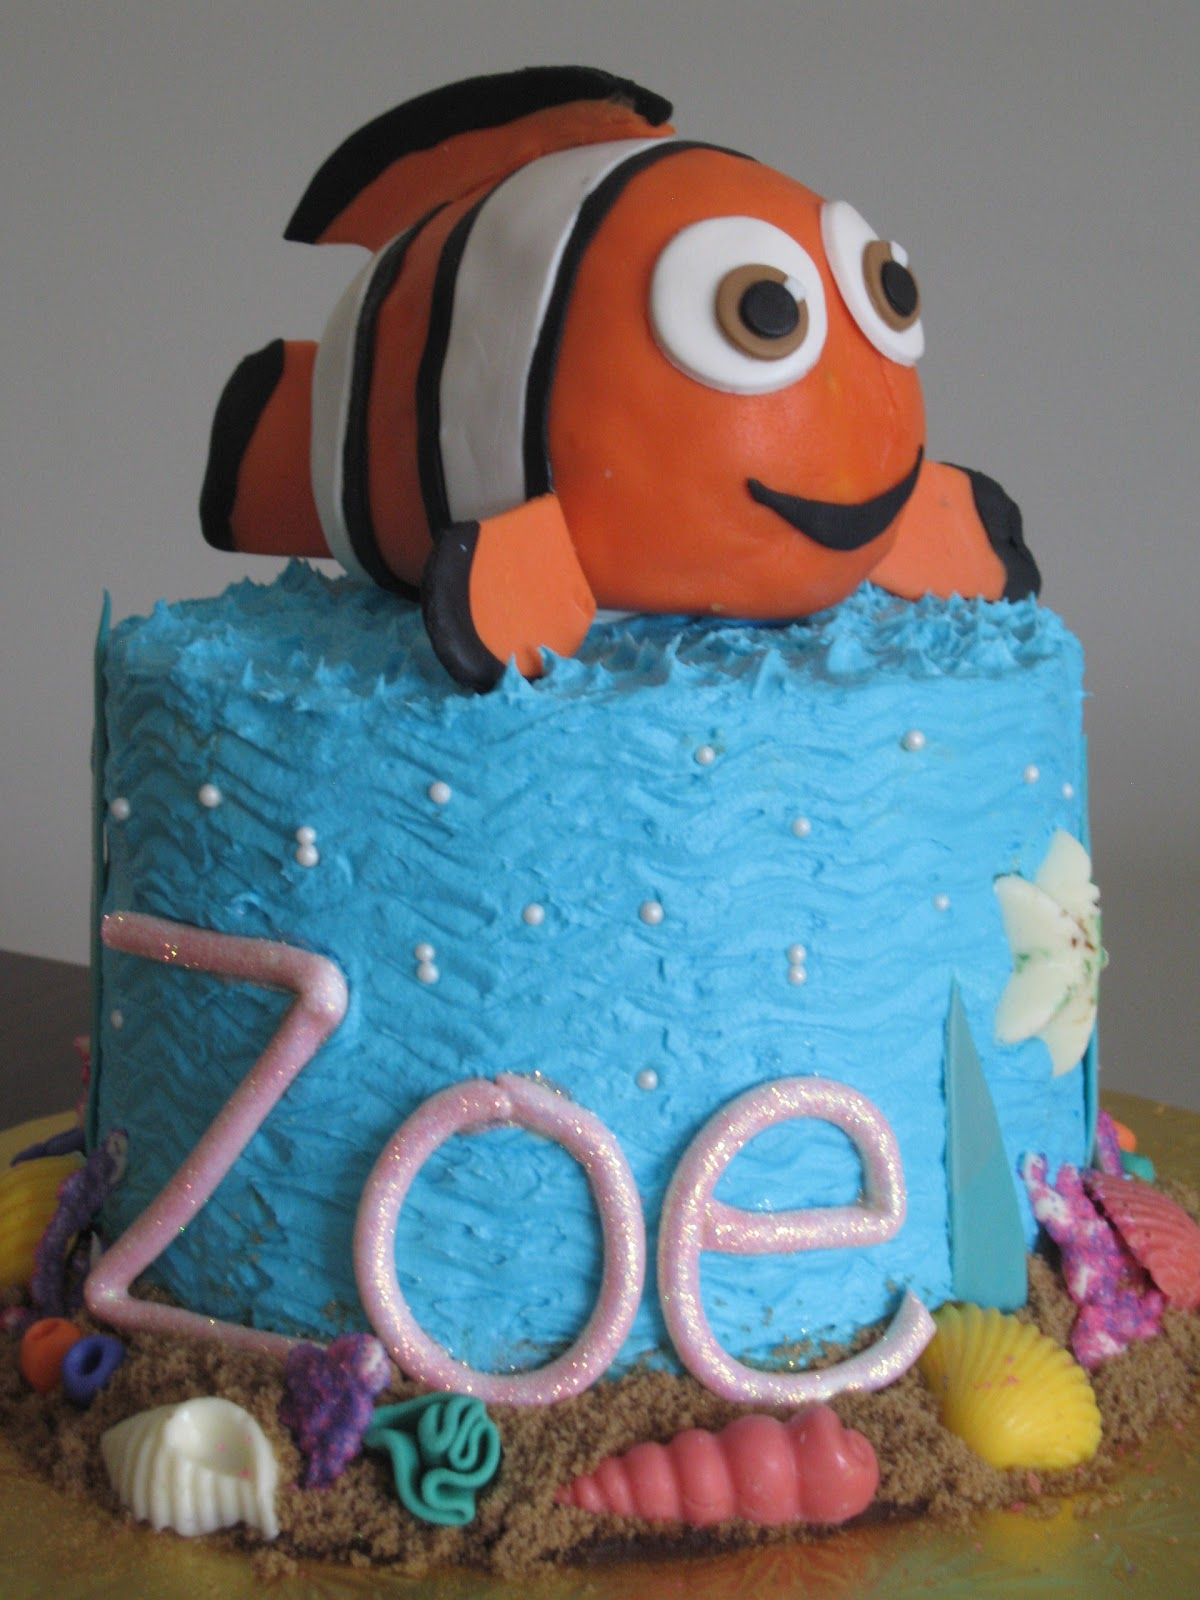 My Sweet Blog: Finding Nemo Cake: A Tutorial in Pictures